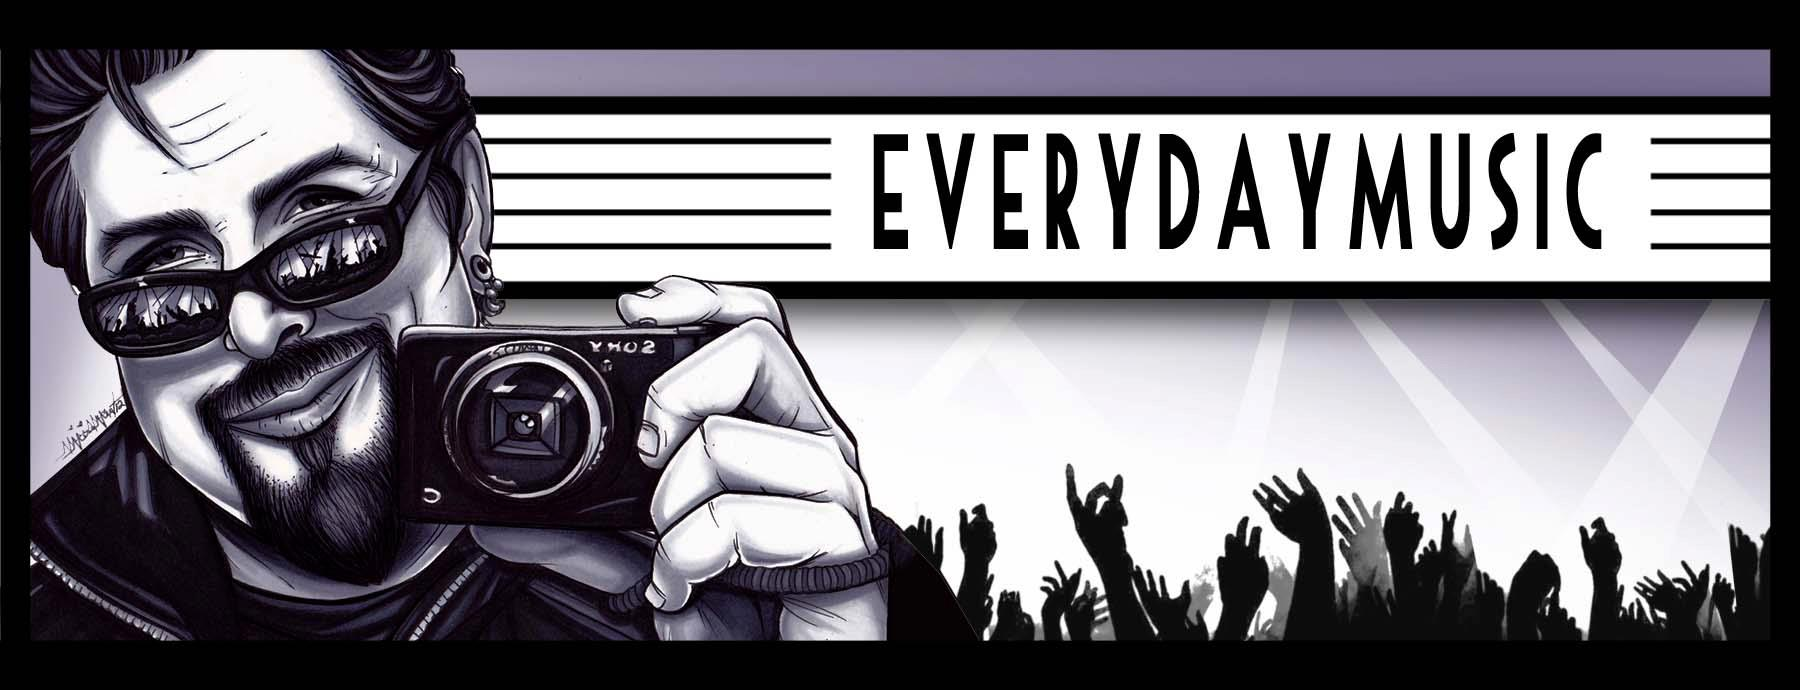 Every Day Music, 1000 songs, 1000 artists, 1000 days